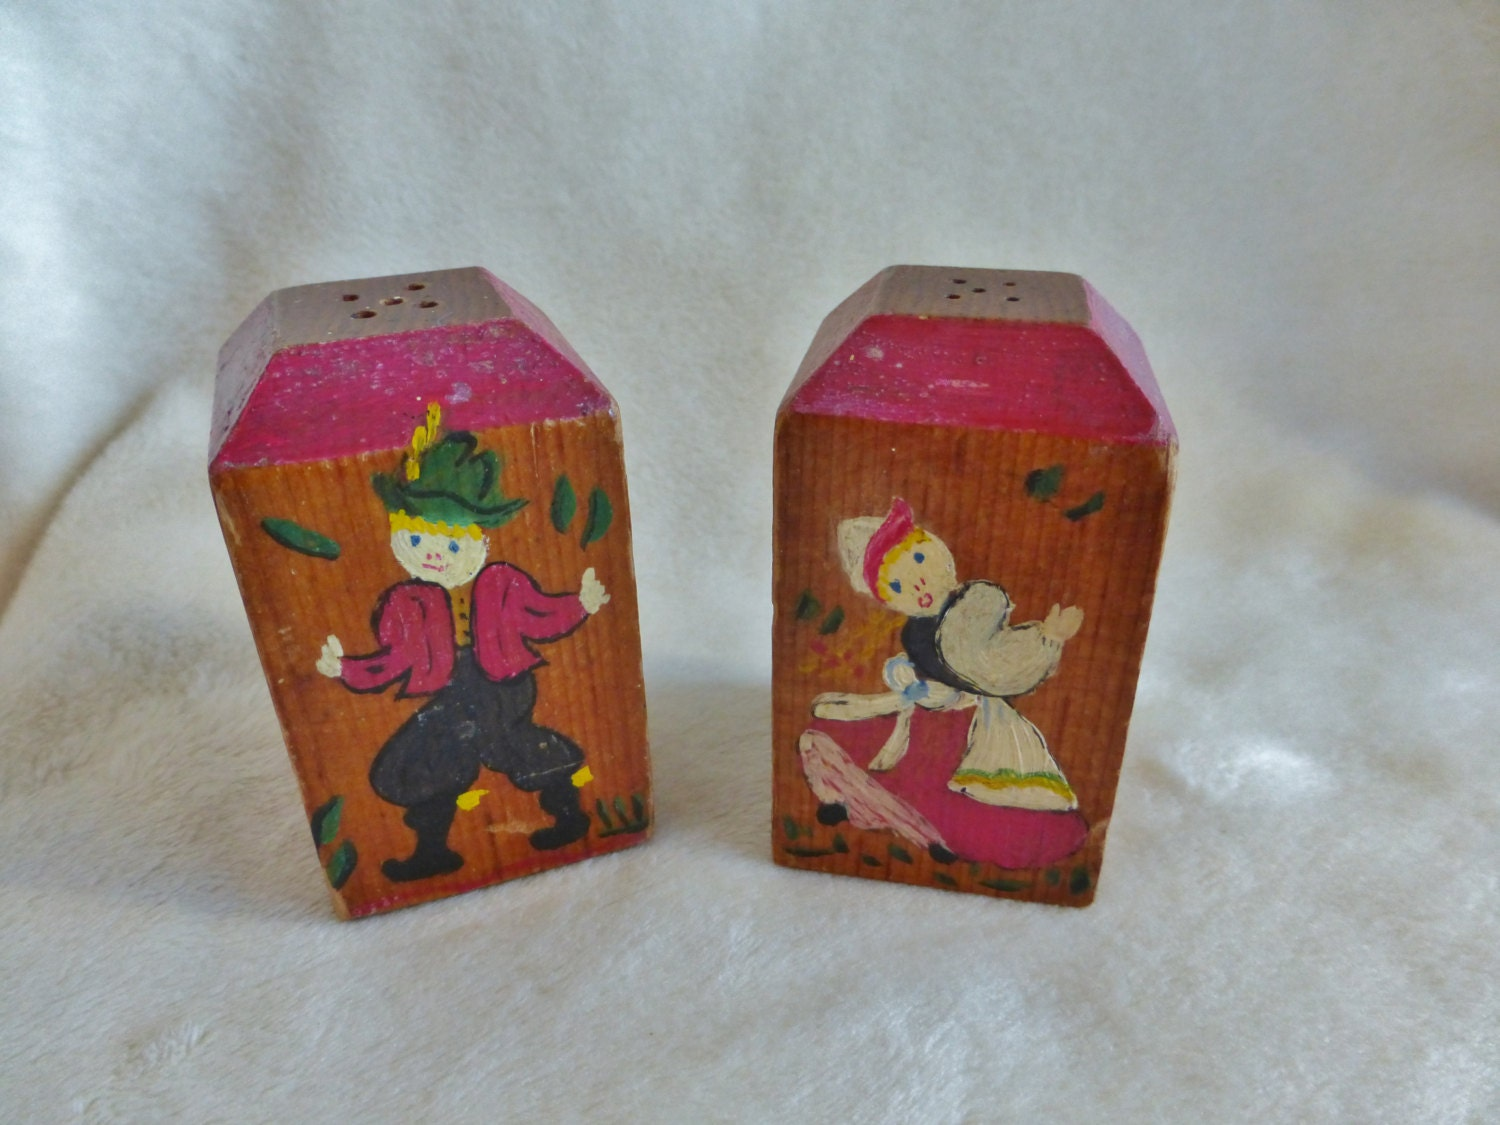 Vintage Salt And Pepper Containers With Primitive Paintings Of